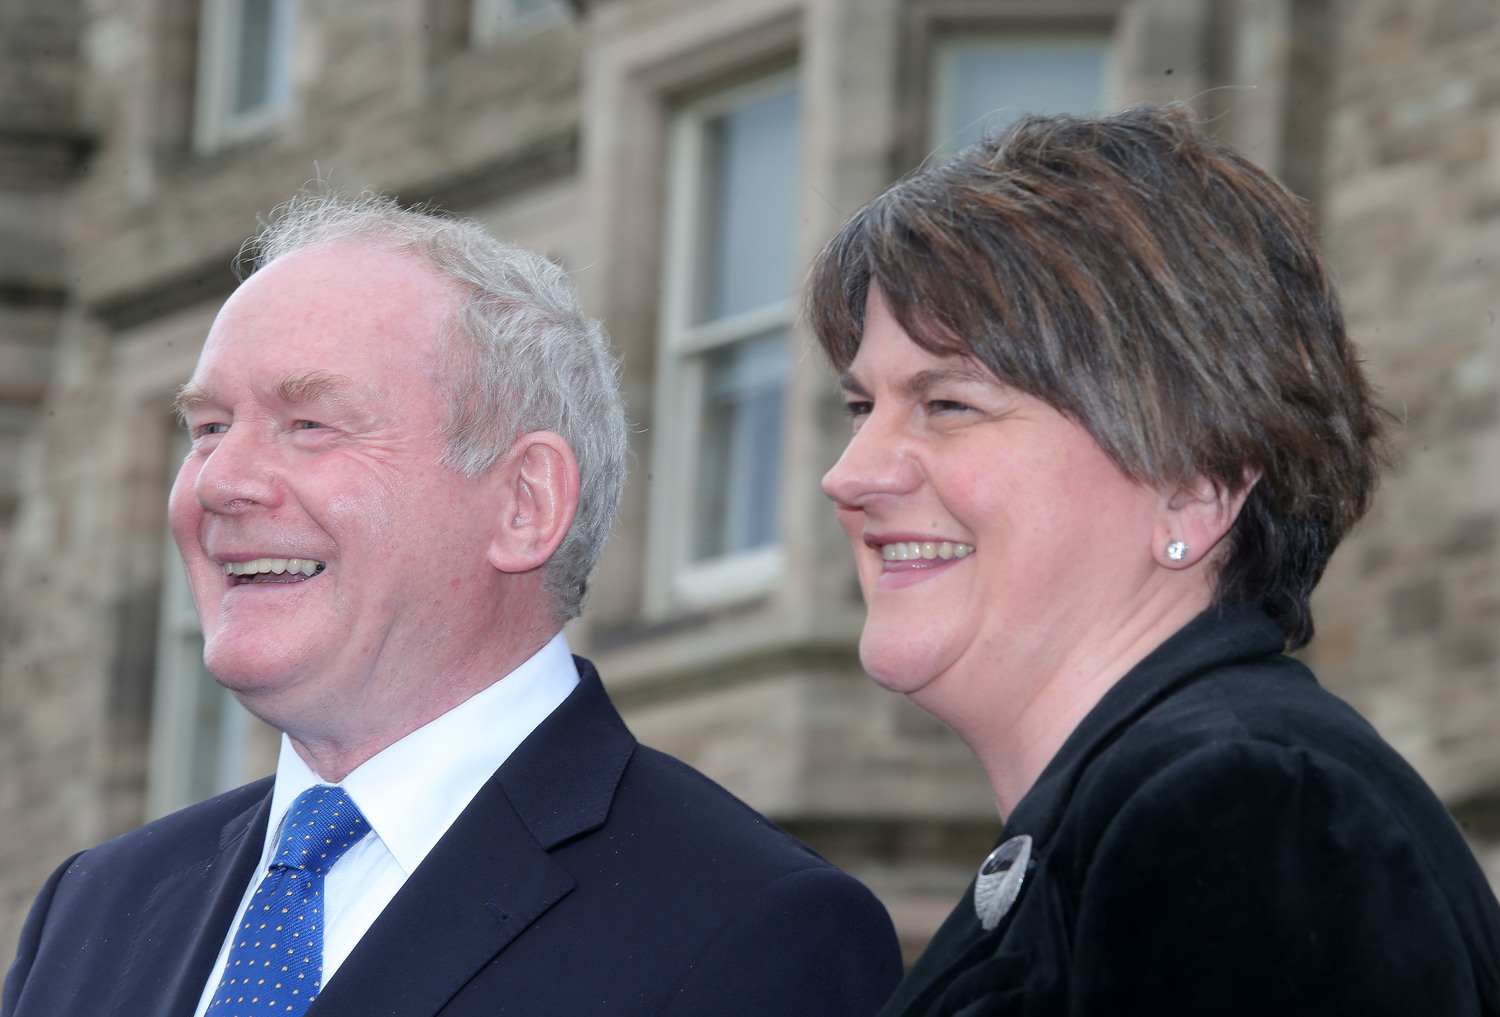 Martin & Arlene, already dubbed 'Marlene' by those highlighting the joint nature of their office